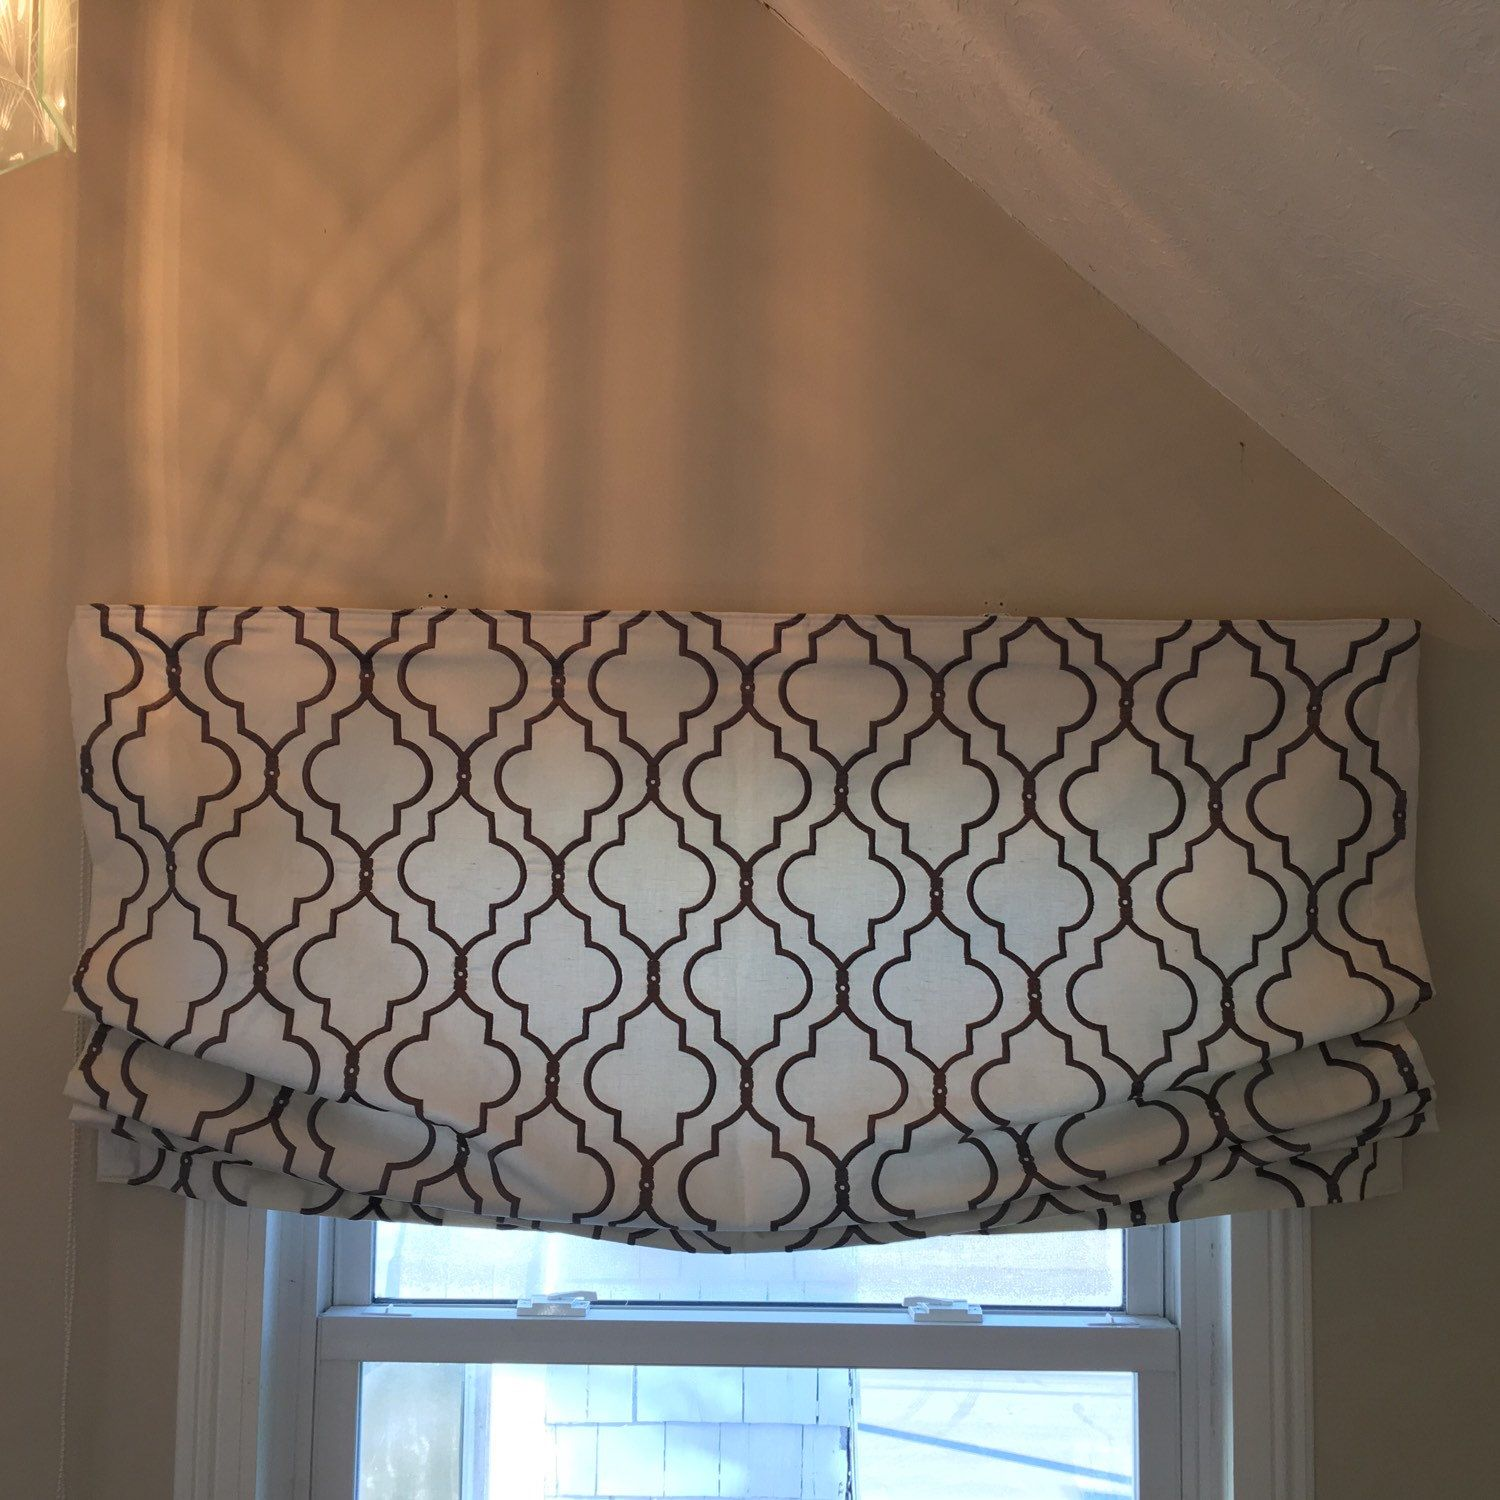 Cheap roman shades clearance - Childsafe Custom Relaxed Roman Shade Clutch System Fully Encased Cording Ballard Panel Turned Into Shade Firenze Do Not Purchase Listing